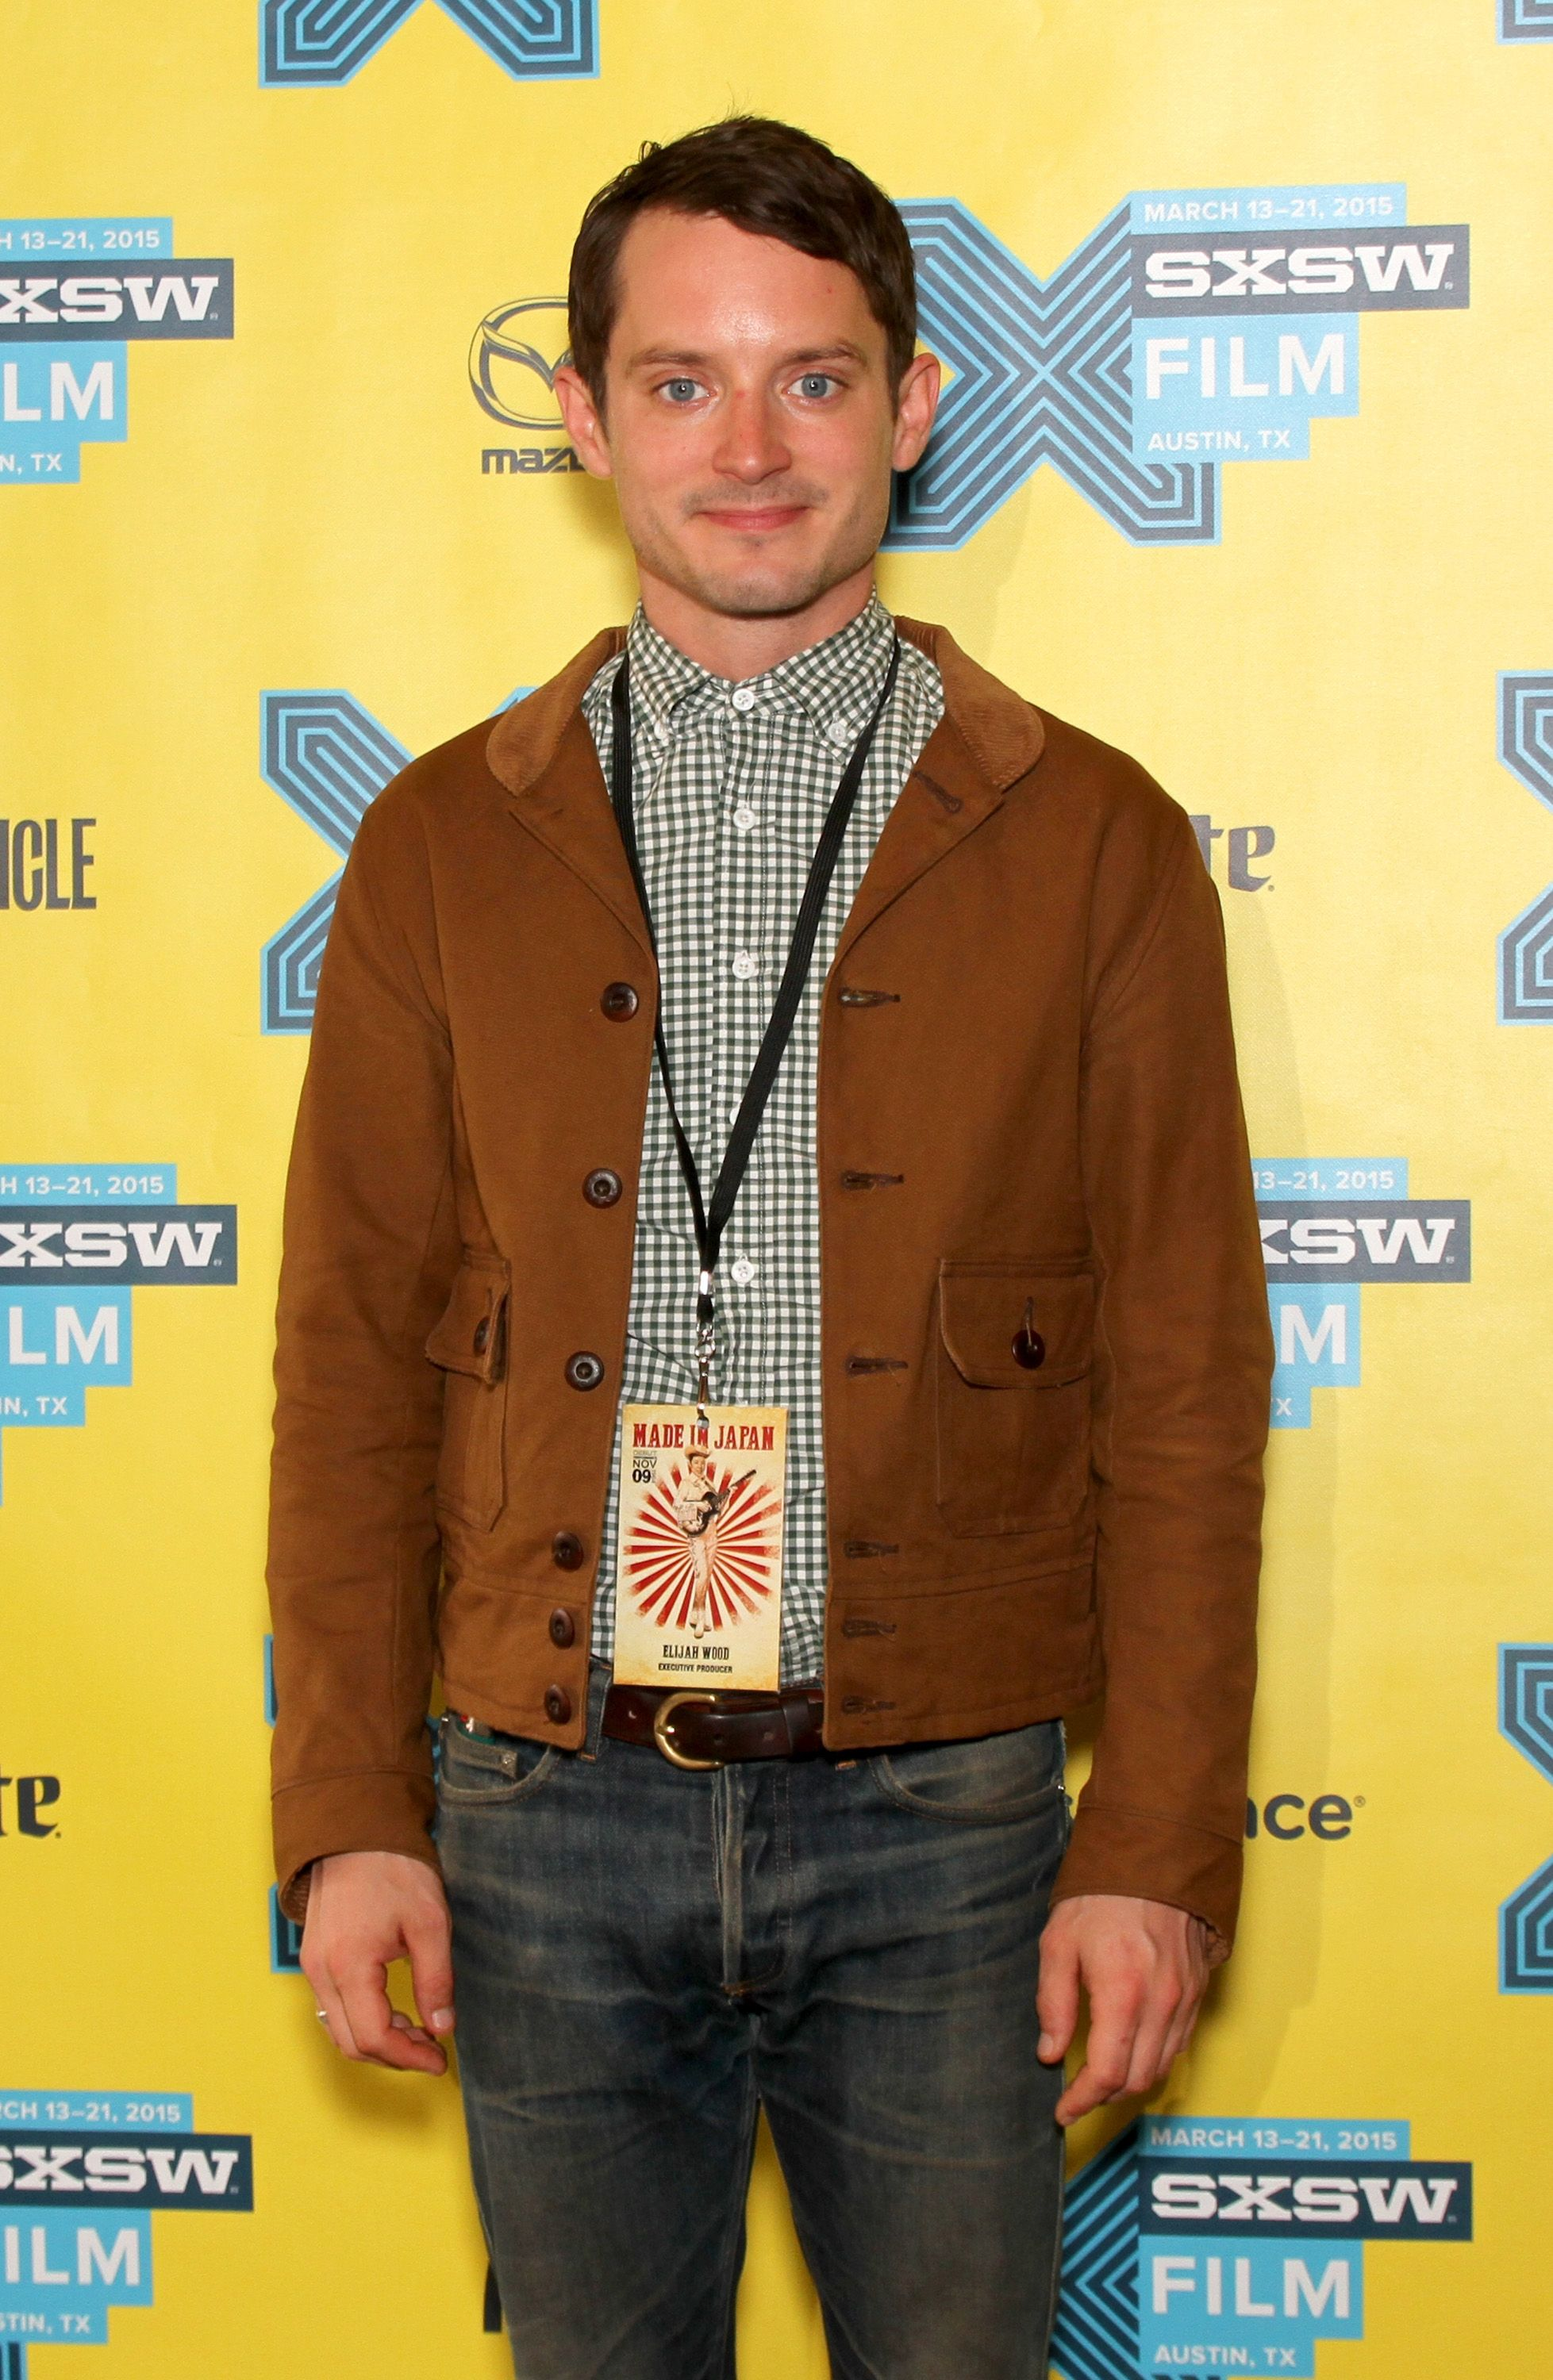 Lord of the Rings' Elijah Wood pays tribute to Christopher Tolkien after his death aged 95